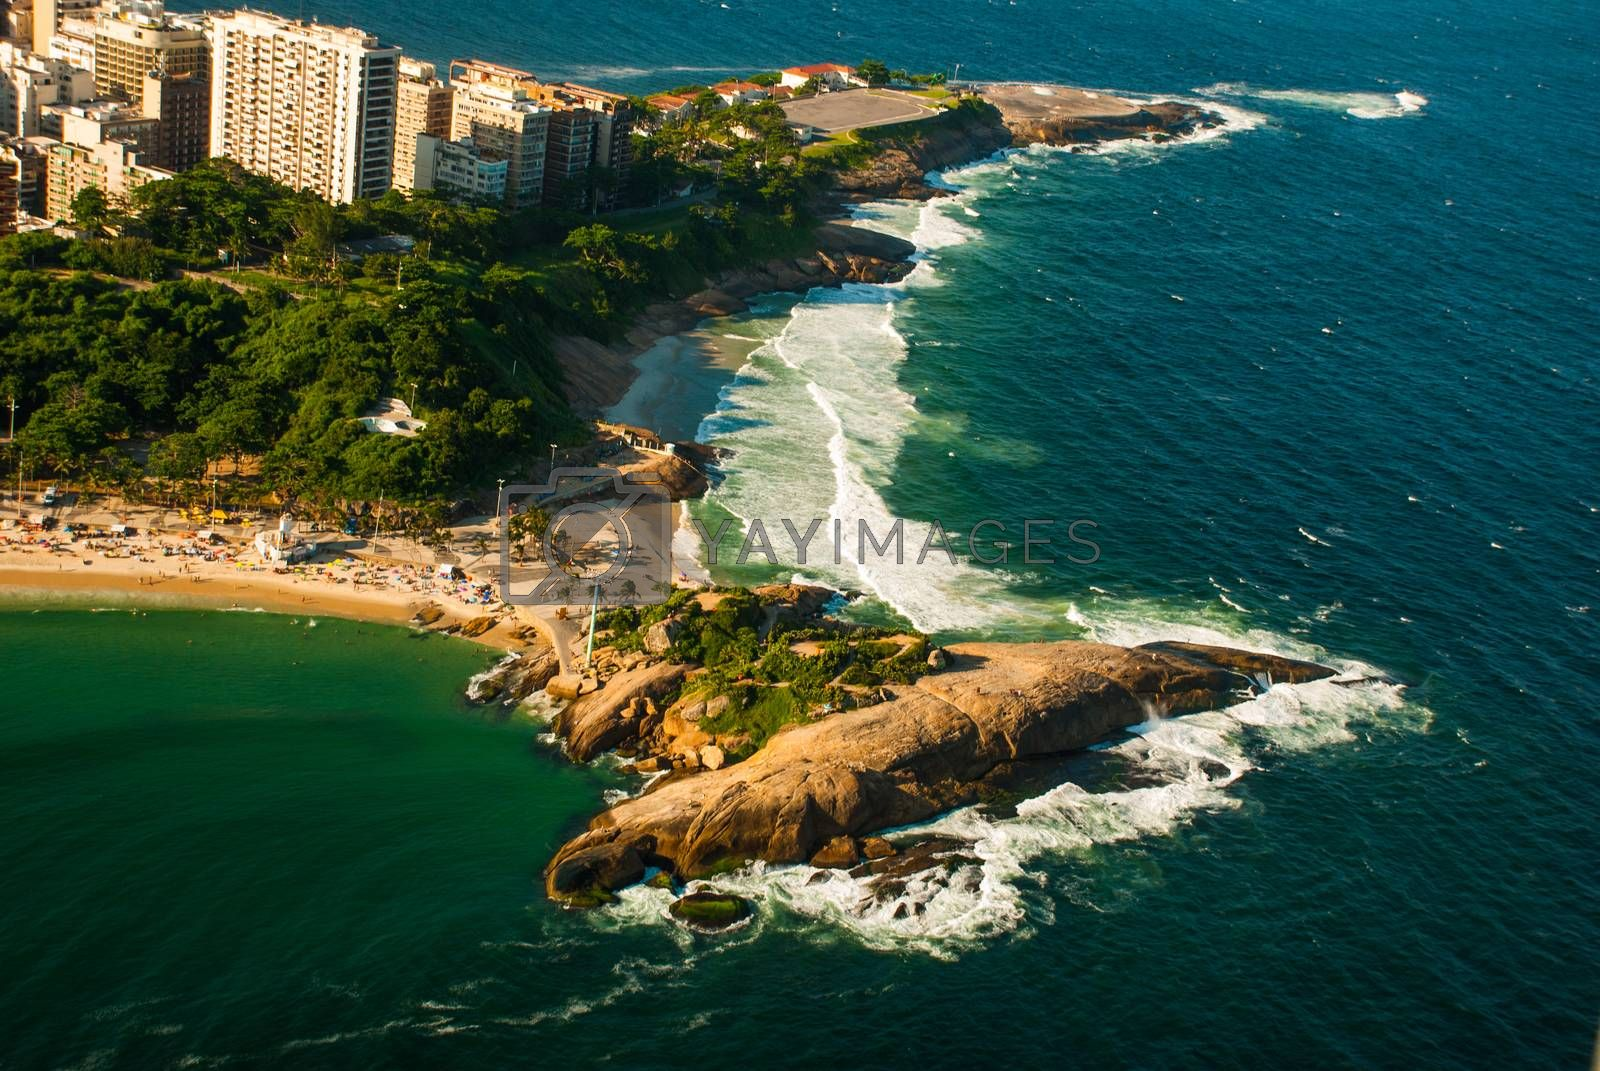 Aerial view of famous Copacabana Beach and Ipanema beach in Rio de Janeiro, Brazil. Beautiful top view of the sea and the beach.